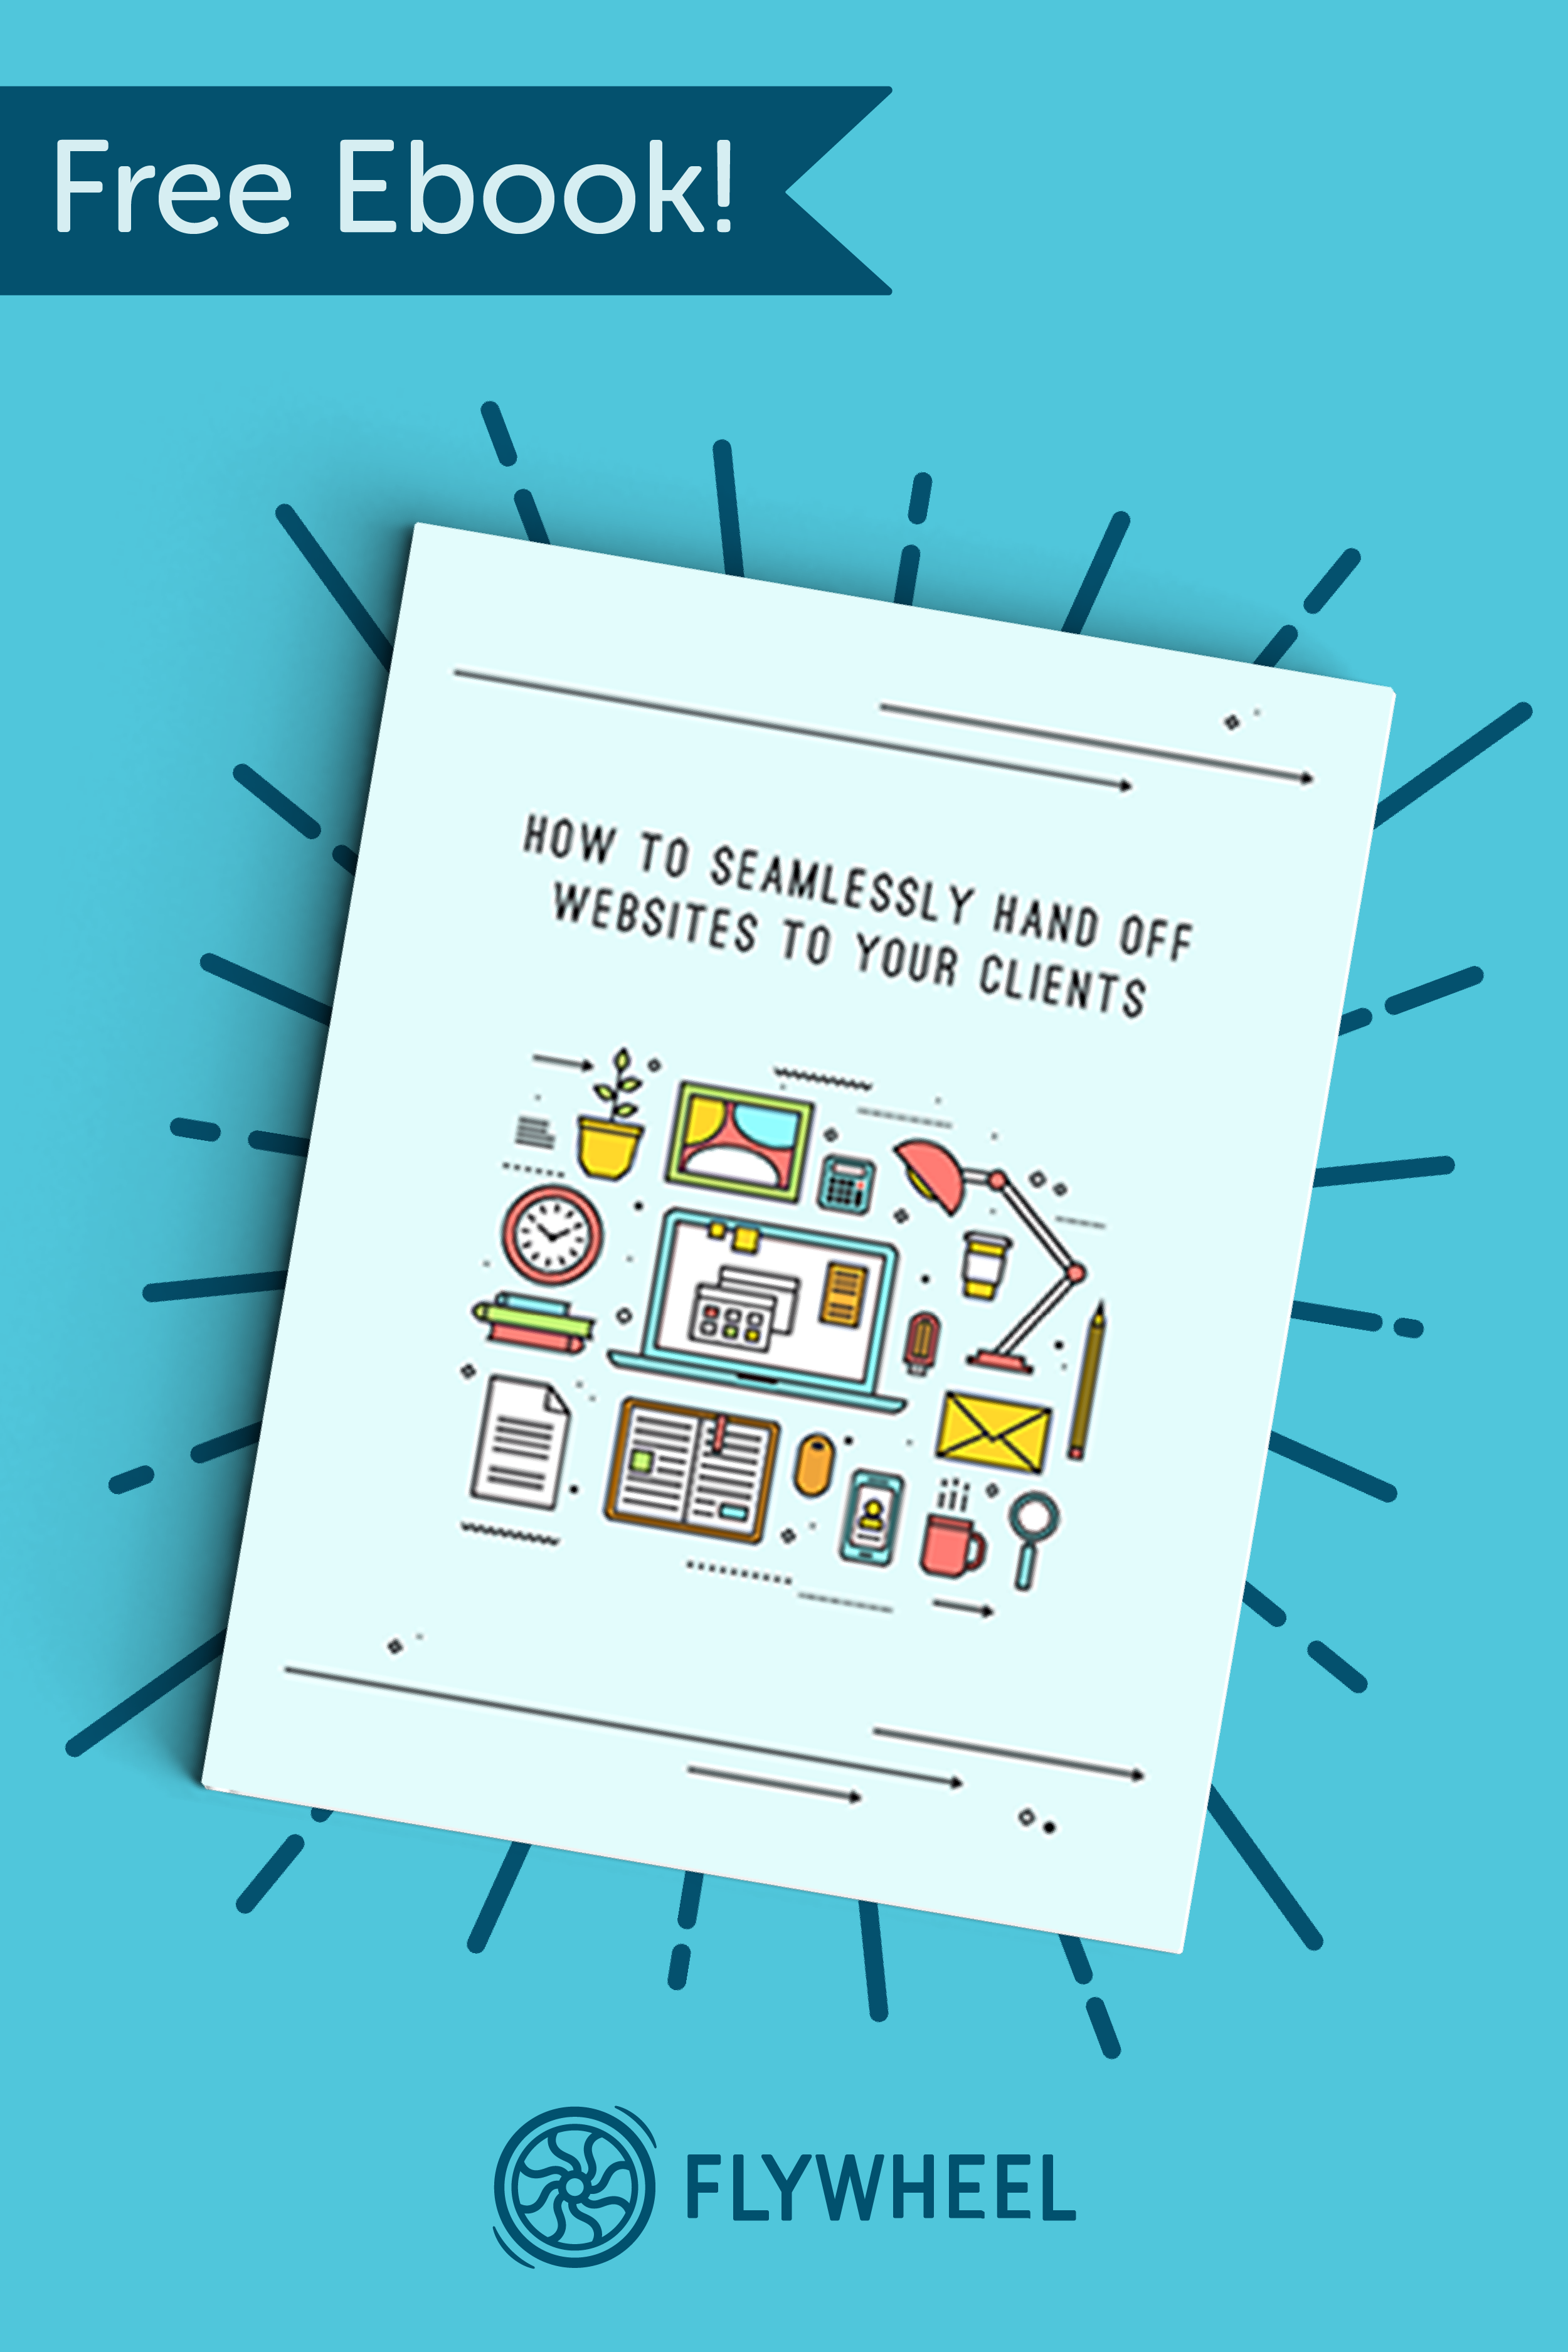 How To Seamlessly Hand Off Websites To Your Clients This Free Ebook Is Perfect For Growing Your Design Agency After All Learning Design Free Ebooks Website